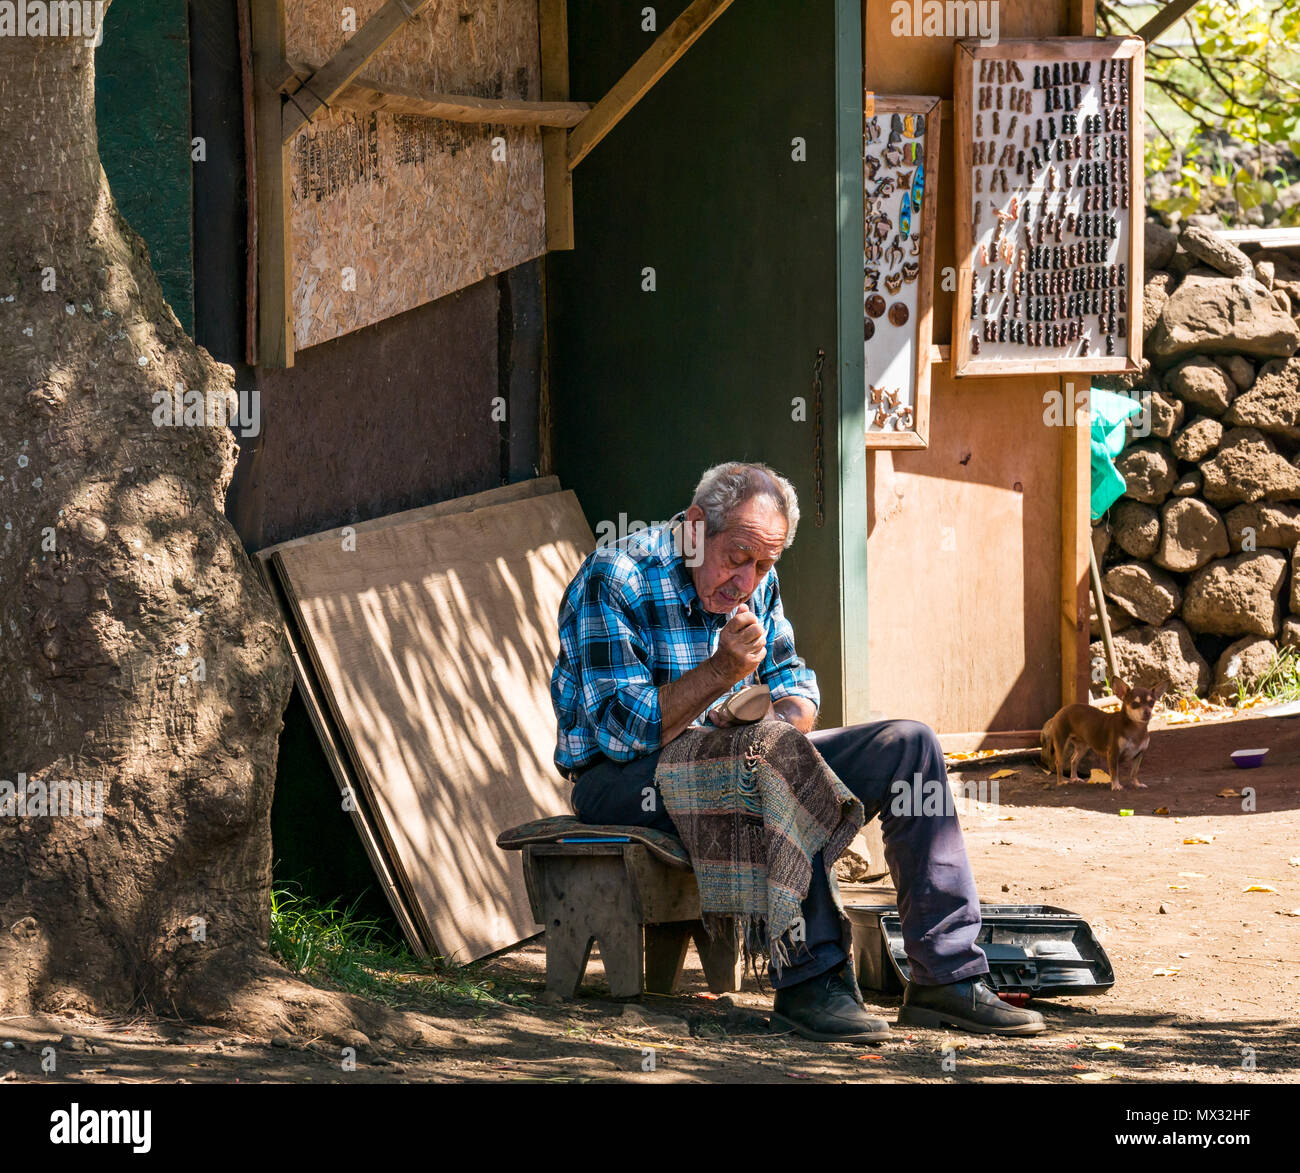 Old man hand sitting on stool in shade carving wooden Moai figure for sale to tourists, Rano Raraku quarry, Easter Island, Rapa Nui, Chile Stock Photo